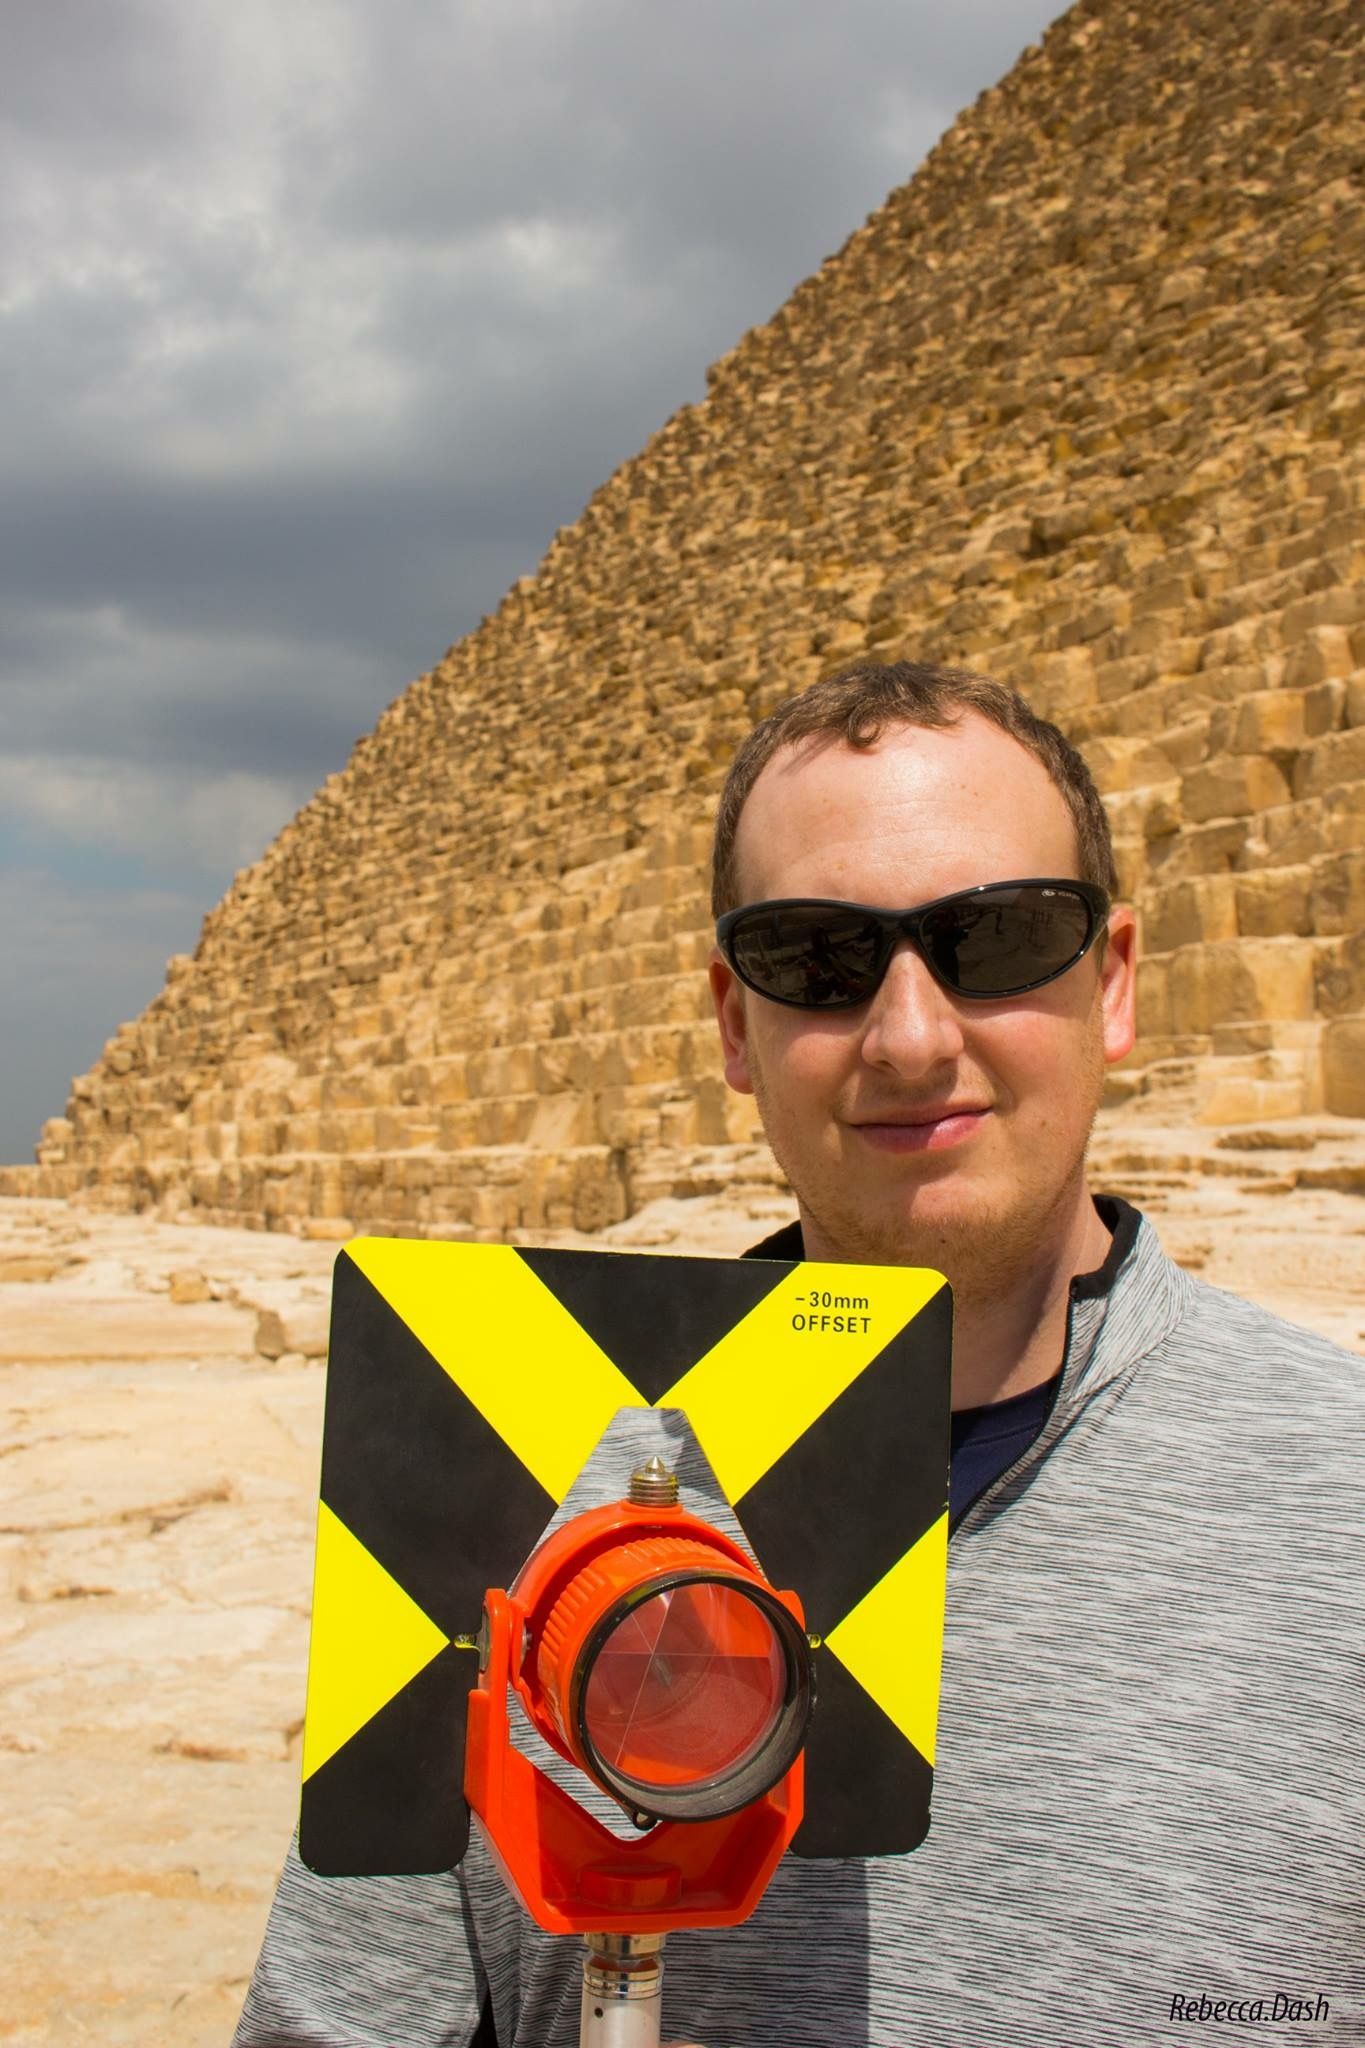 Eric Sperber at Giza